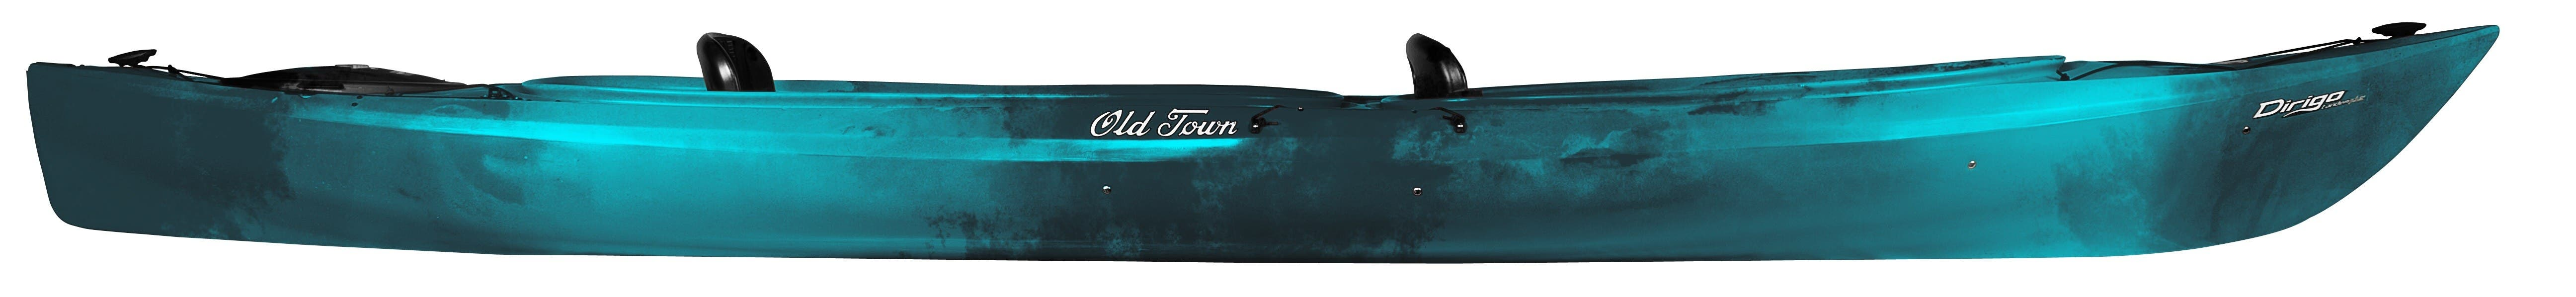 2021 Old Town boat for sale, model of the boat is Dirigo 155t & Image # 3 of 4